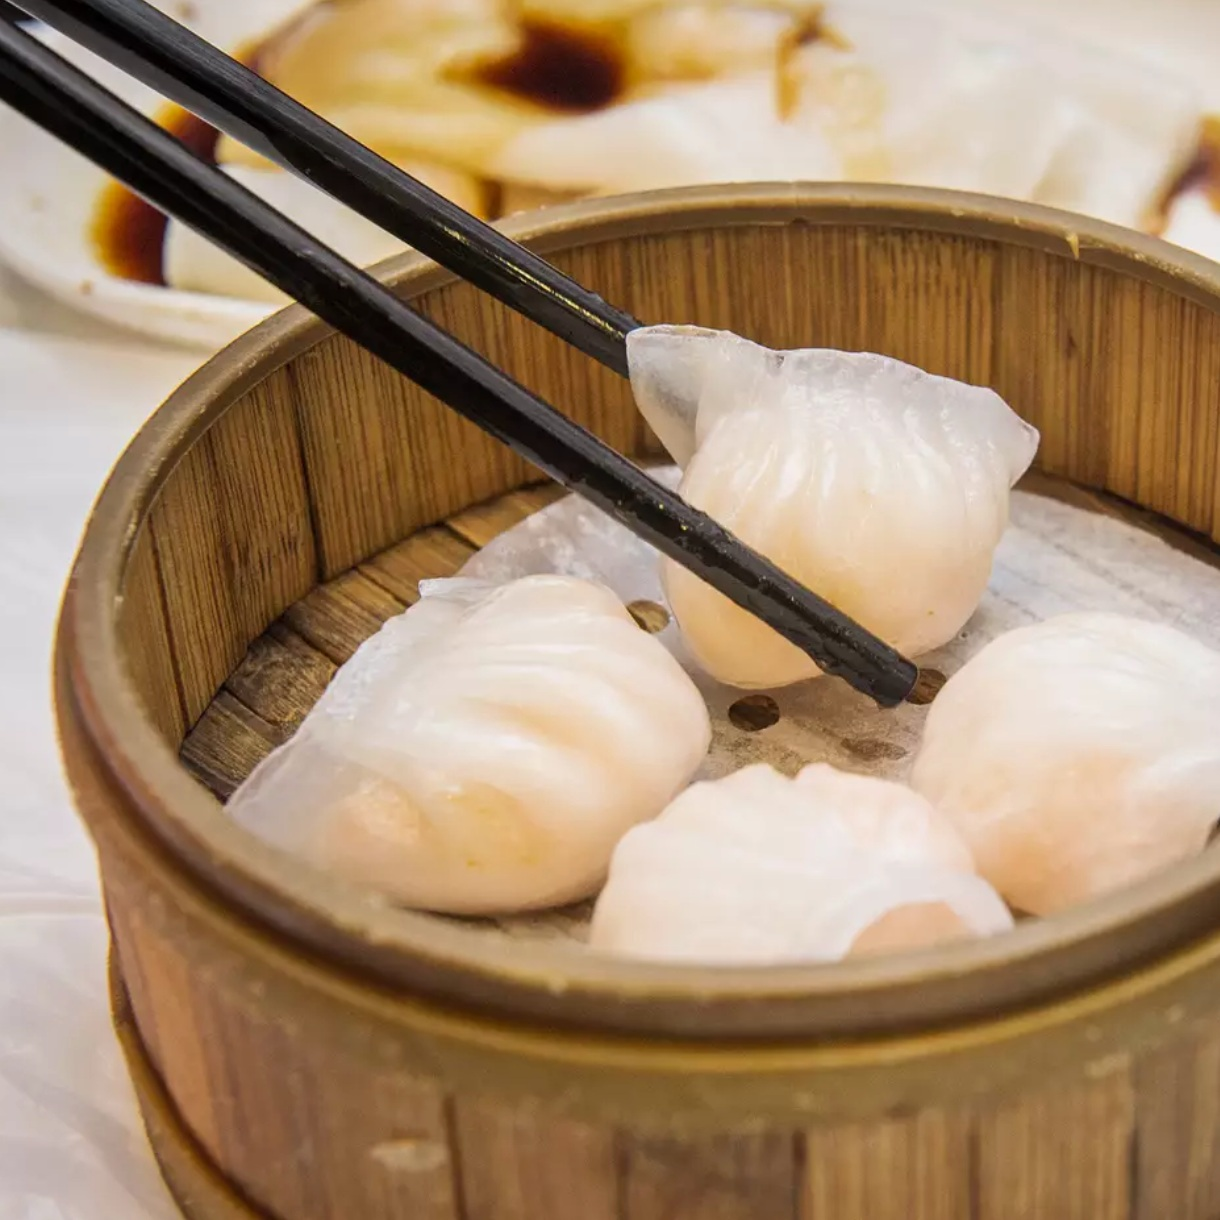 Rol San - Steamed buns. Dumplings. Spring rolls. Need we say more? For some reason, a bountiful assortment of dim sum just screams festive feast. No wonder it's a favourite of Toronto Raptor (and Endy sleeper) Serge Ibaka.323 Spadina Ave.